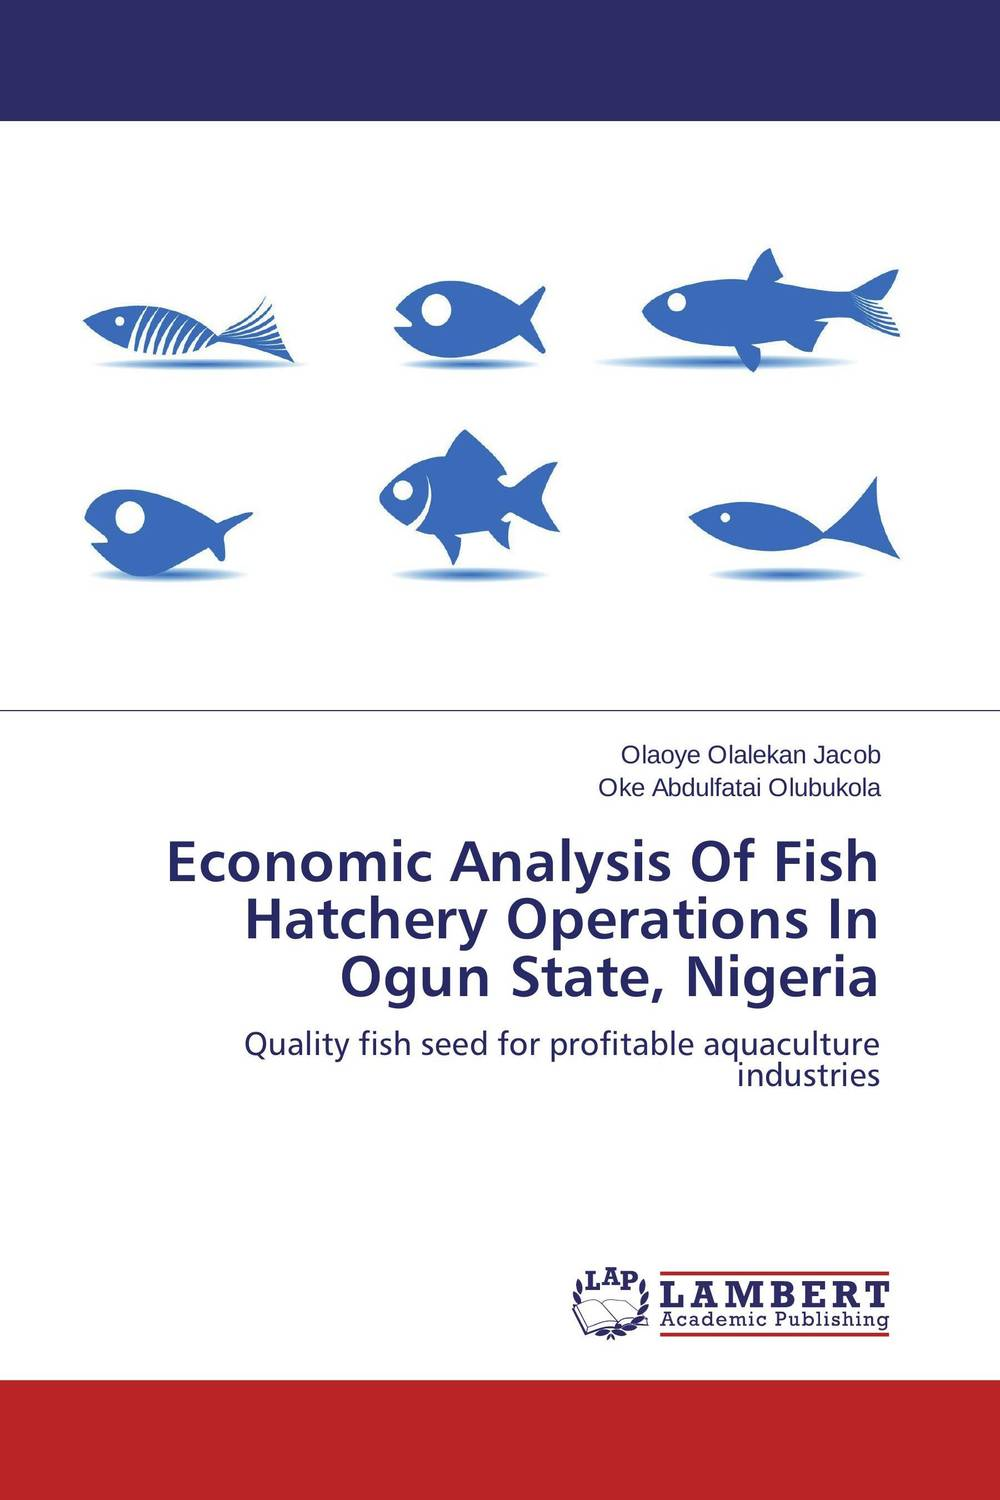 Economic Analysis Of Fish Hatchery Operations In Ogun State, Nigeria gender and socio economic wellbeing of older persons in nigeria